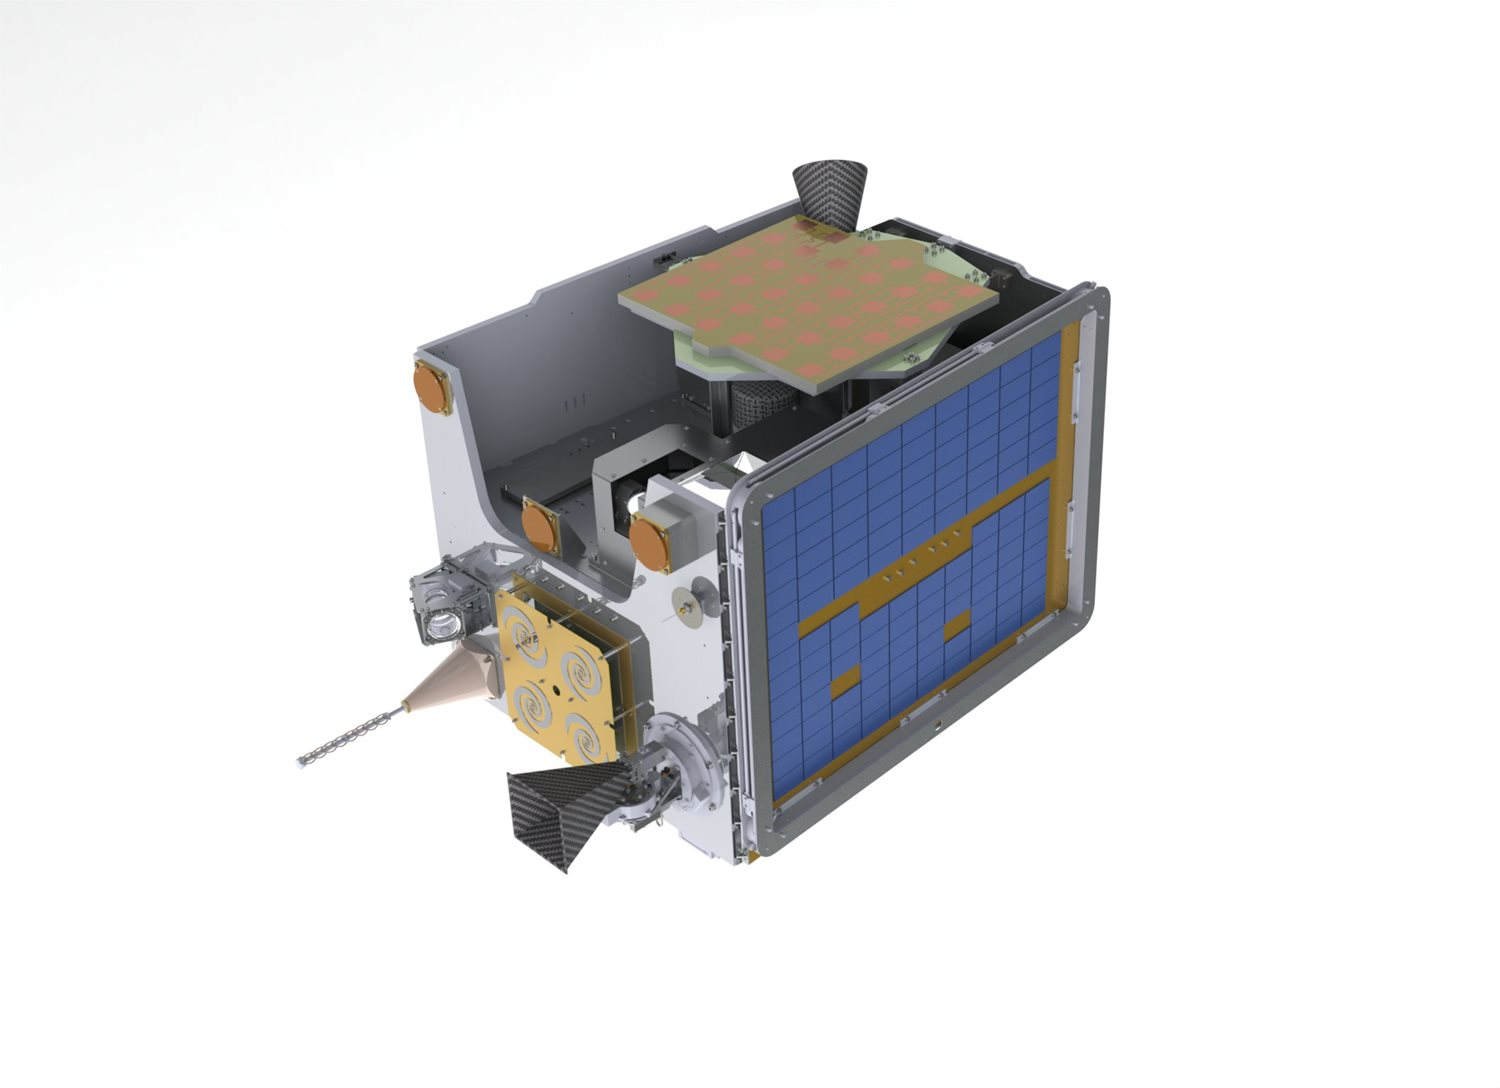 SSTL announces the successful launch of TechDemoSat-1